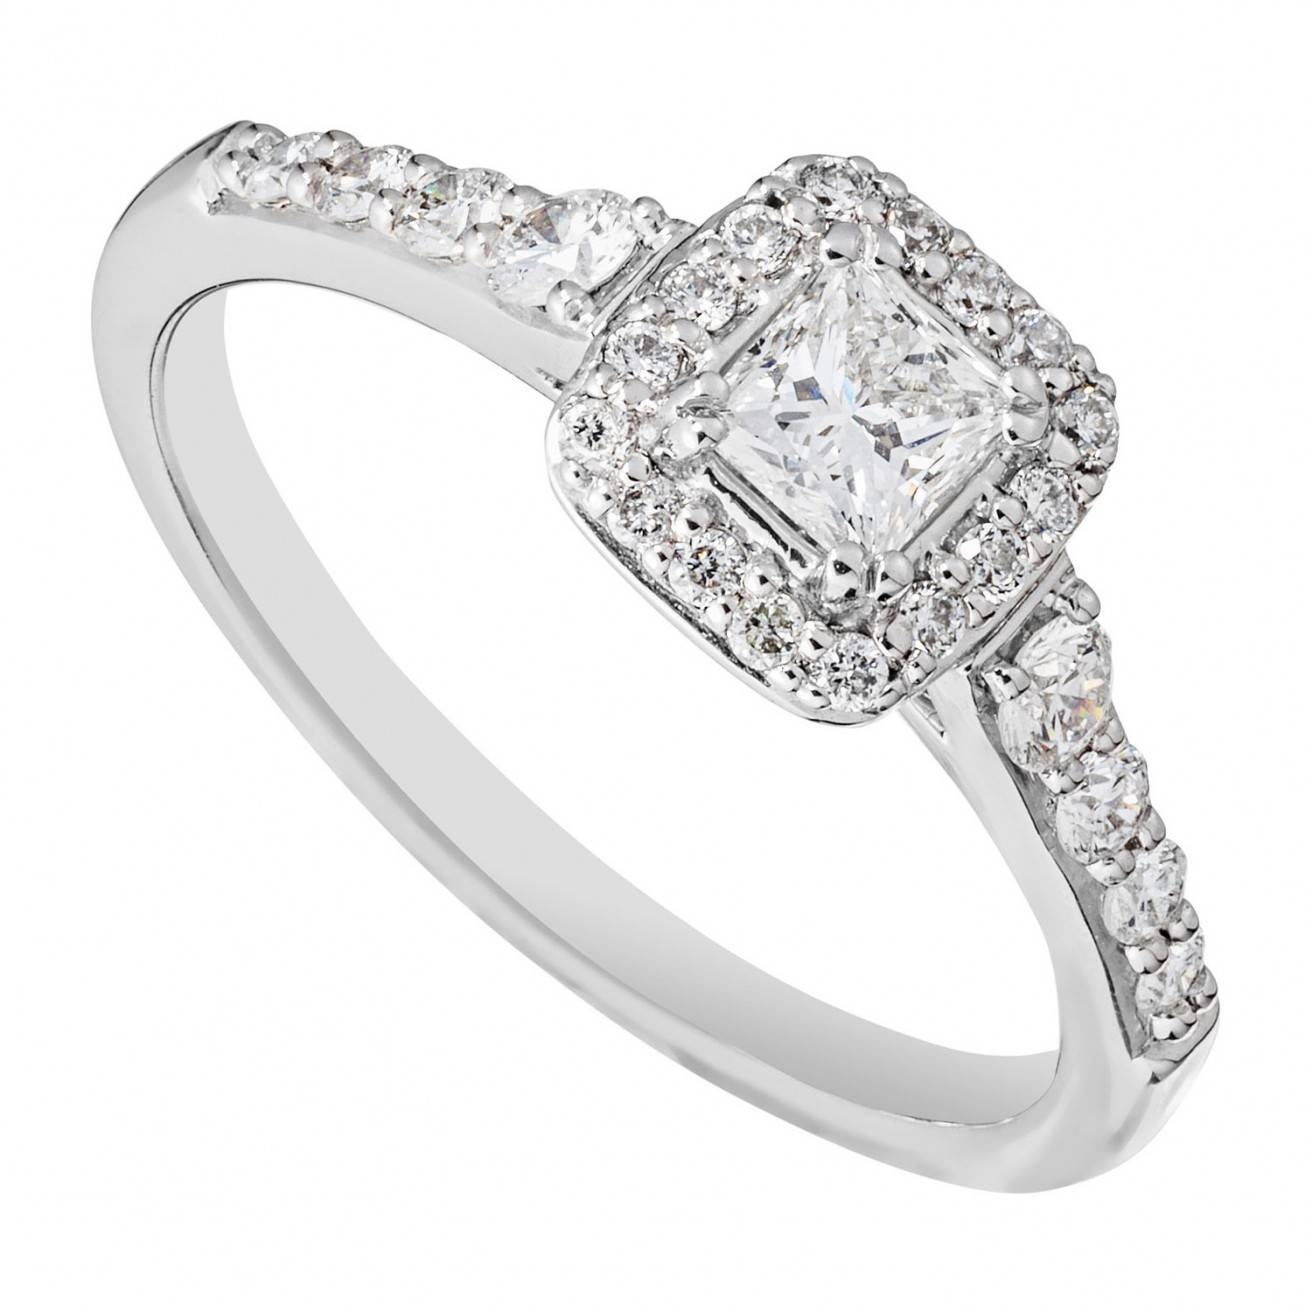 Buy A Diamond Engagement Ring Fraser Hart In Cluster Wedding Rings Gallery 14